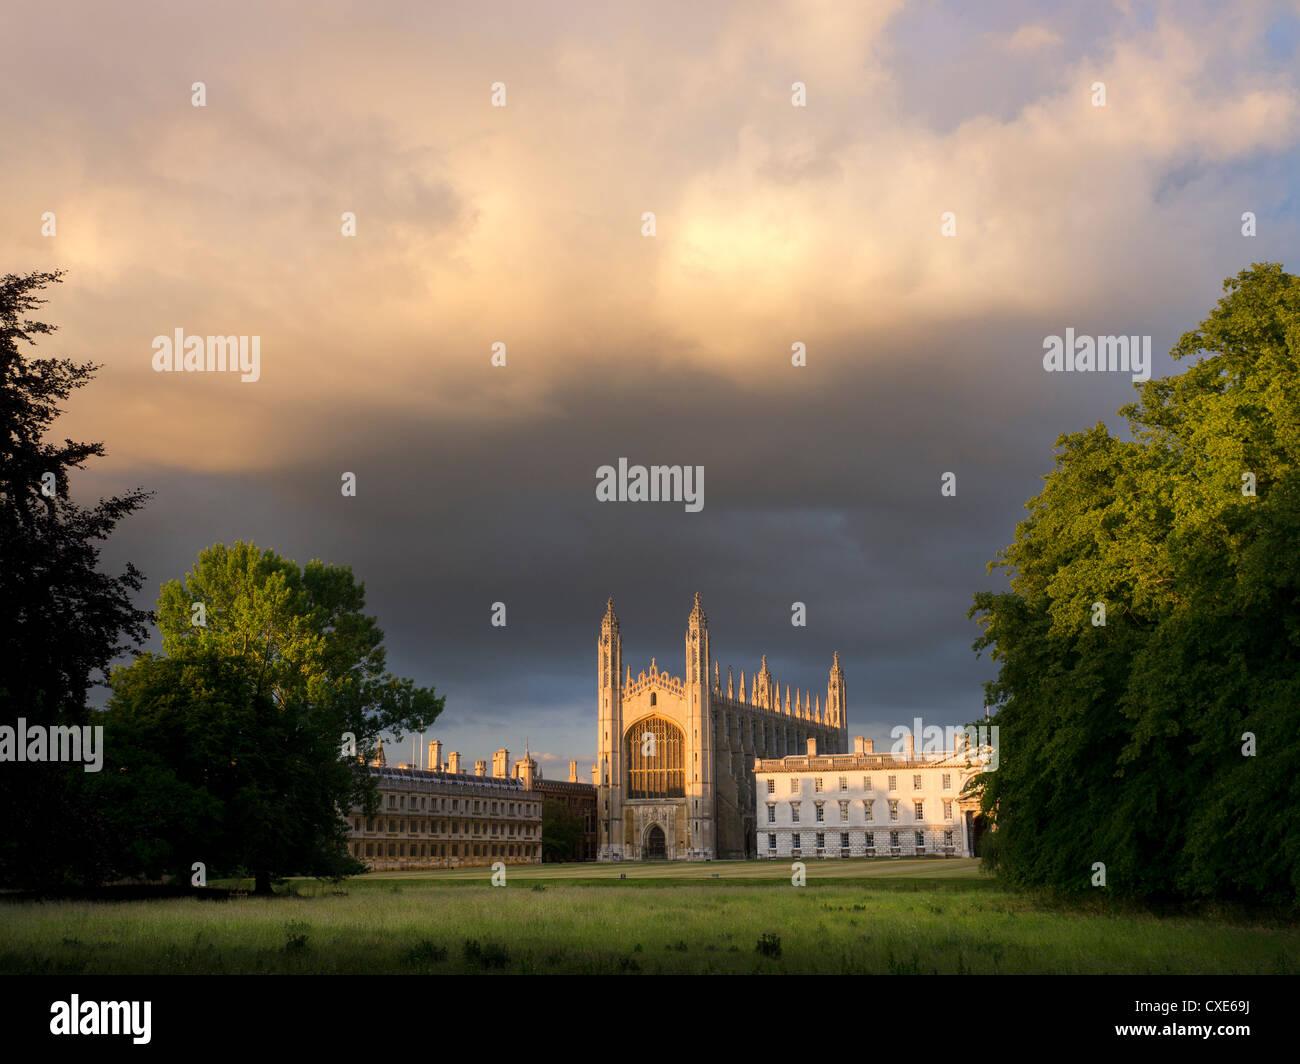 Kings College viewed from the backs, Cambridge, England, UK - Stock Image